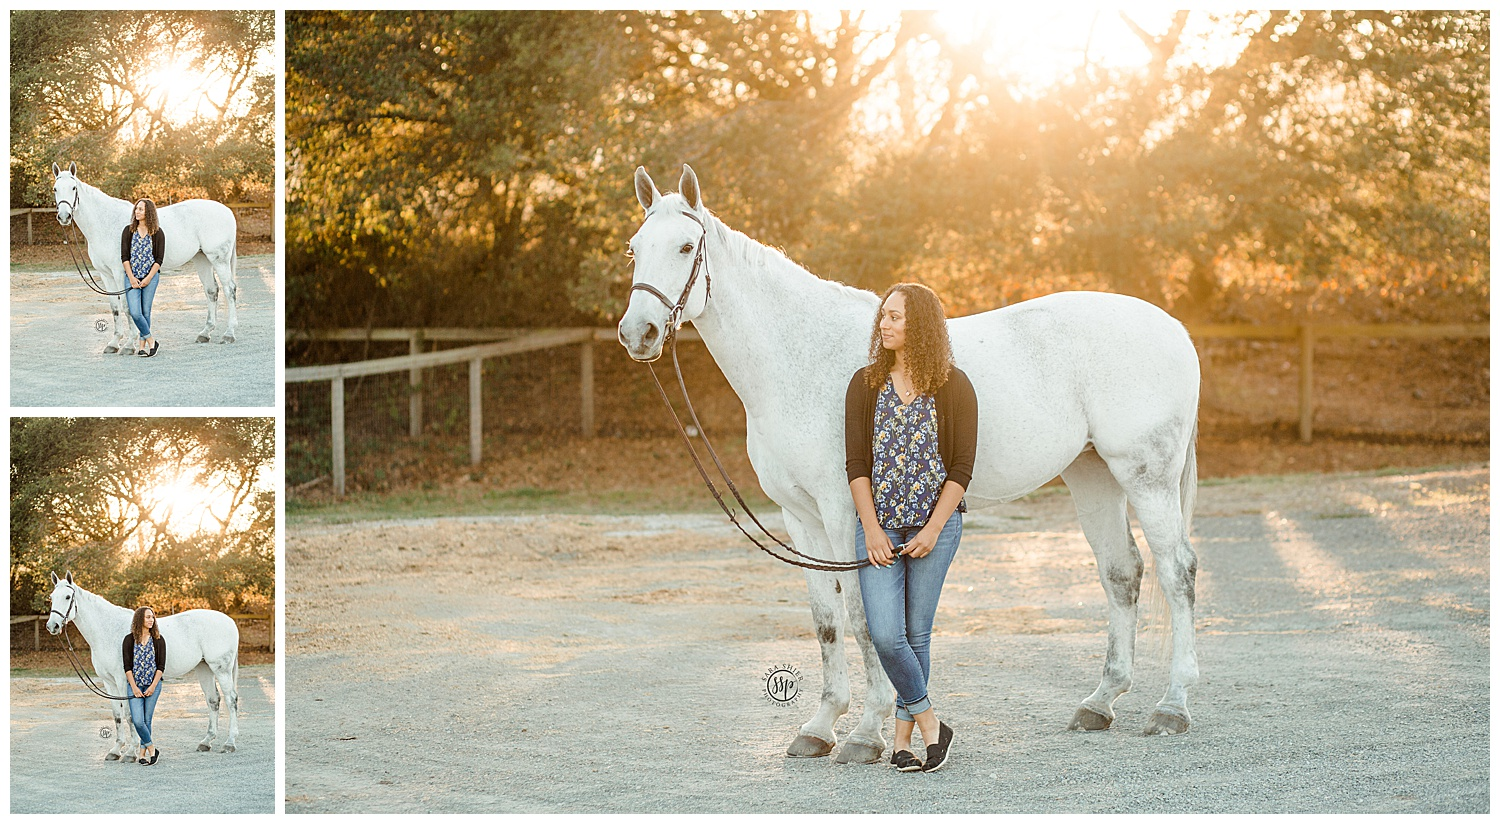 Black Background Horse Rider Equine Photographer Southern California Sara Shier Photography SoCal Equestrian Cowgirl_0246.jpg